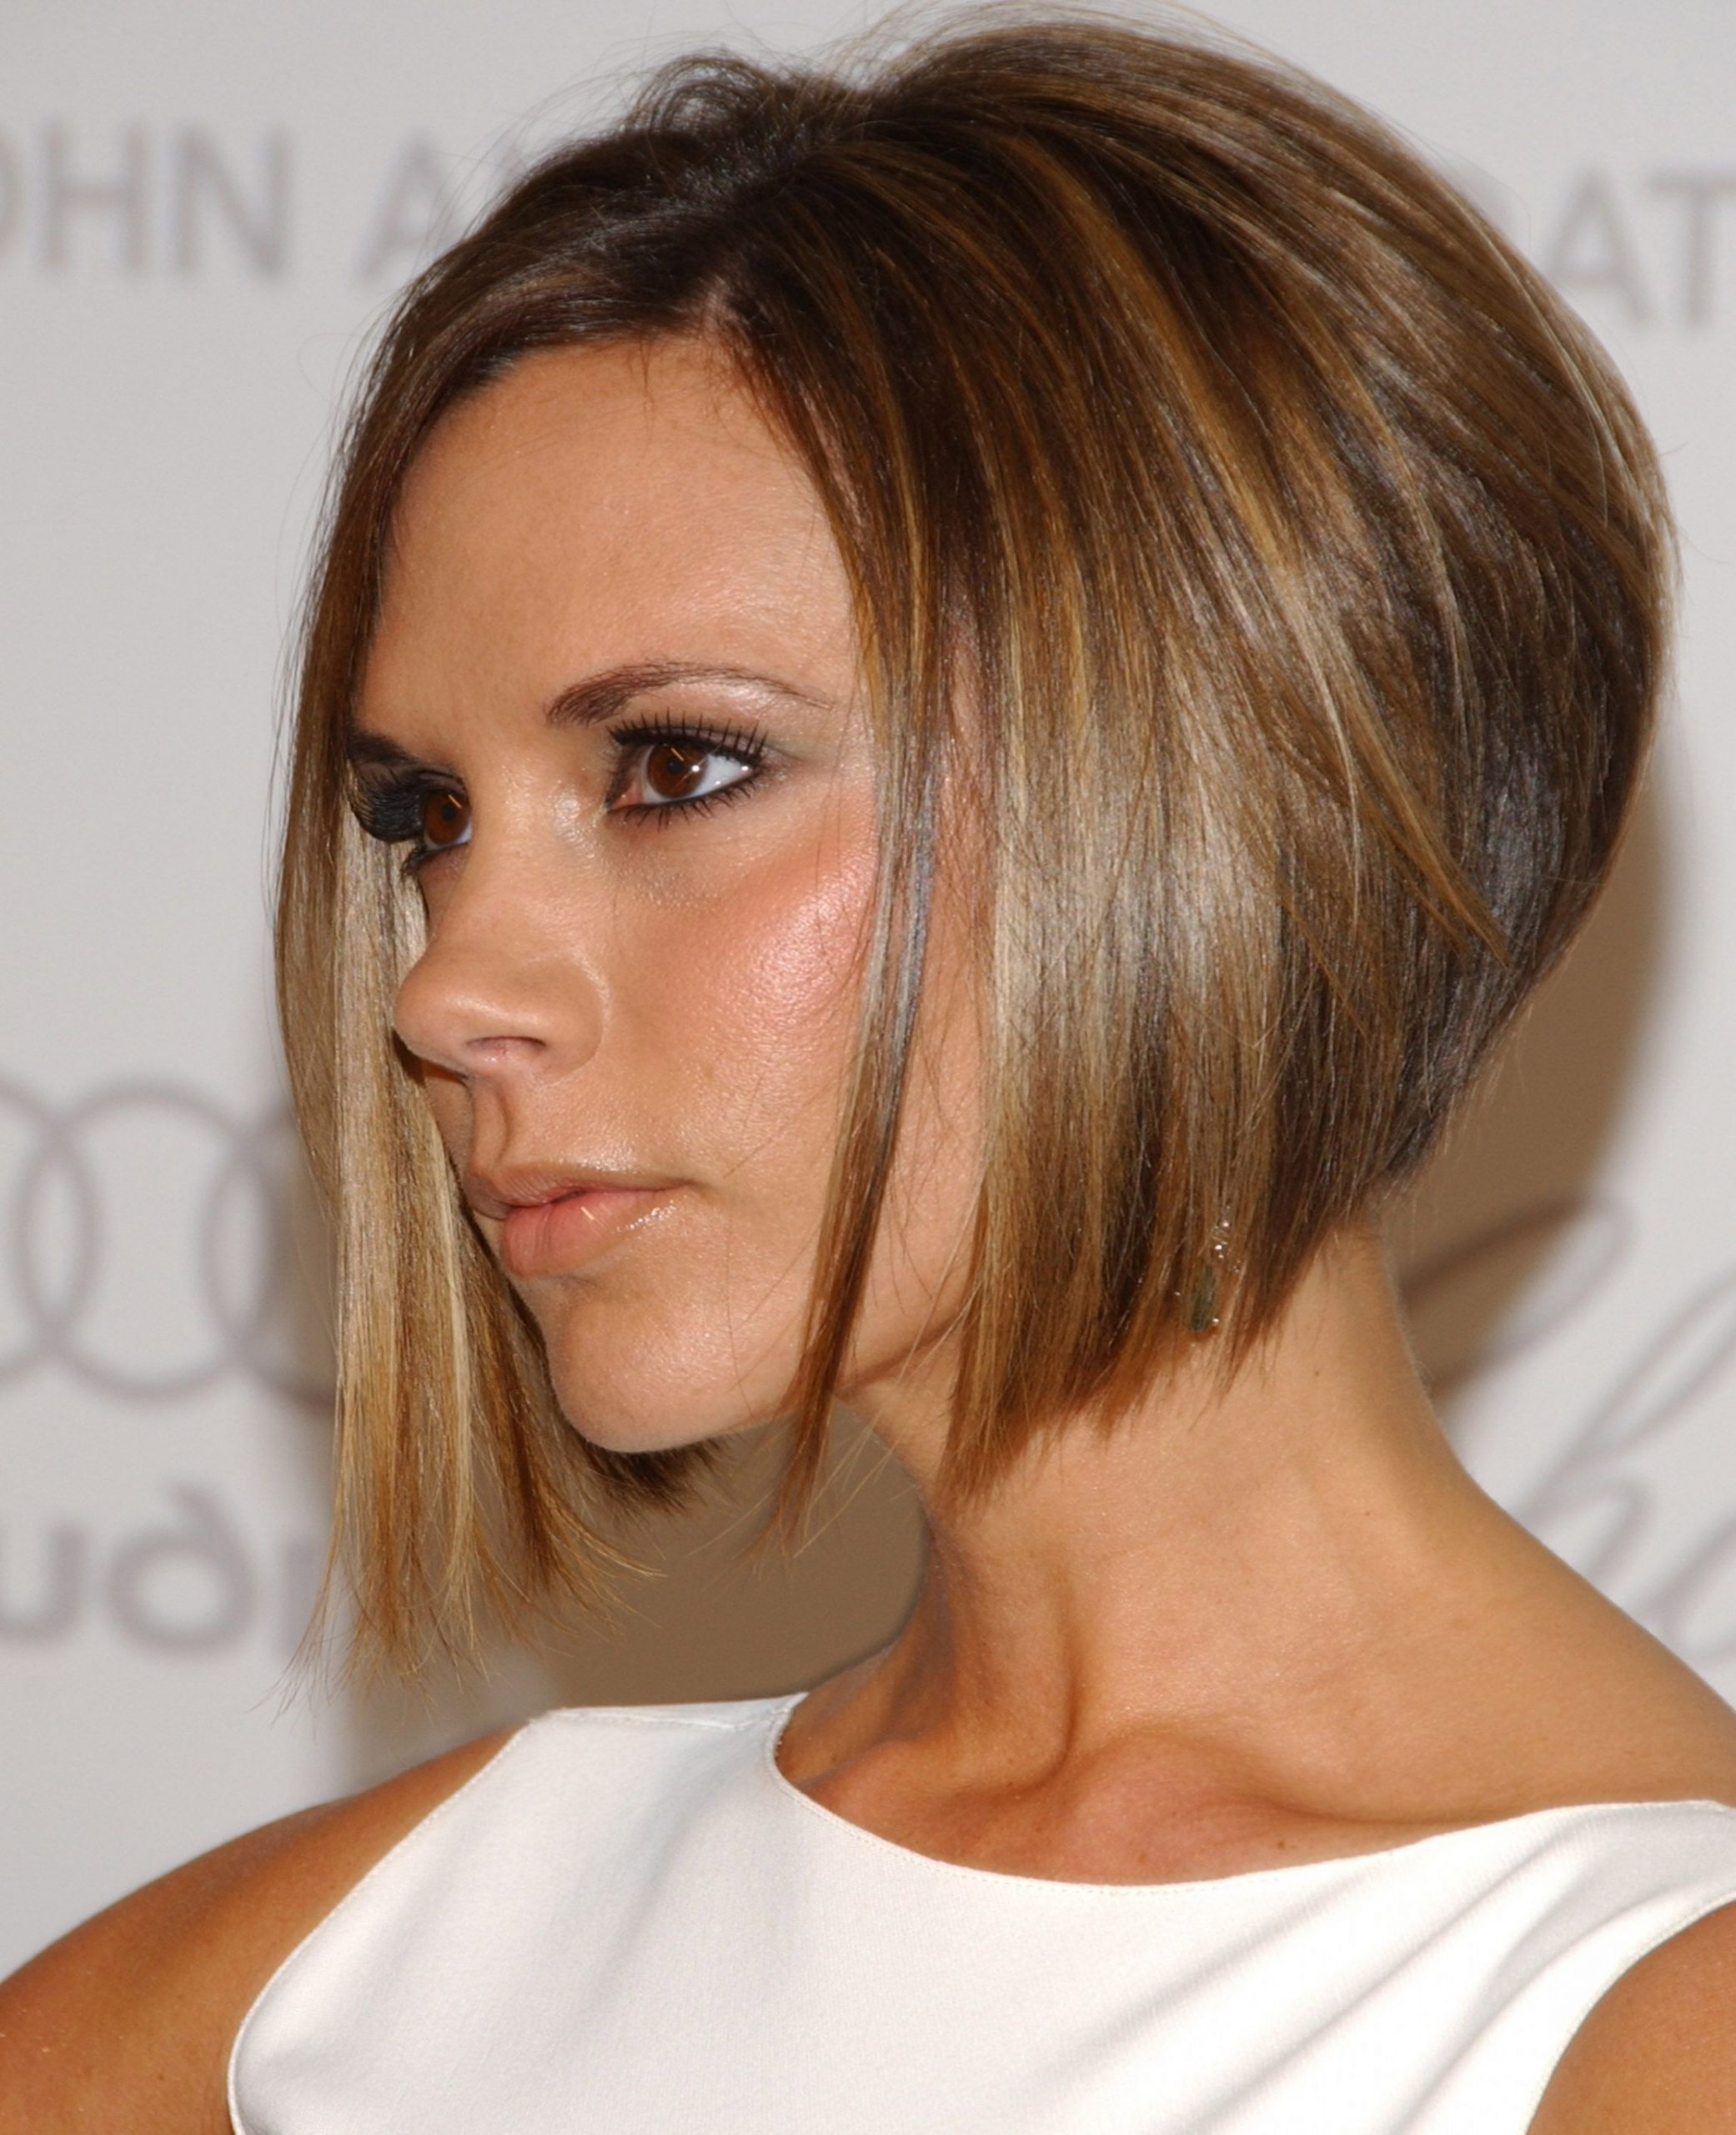 10 Angled Bob Hairstyles - Best Ideas for Bobs With an Angled Cut